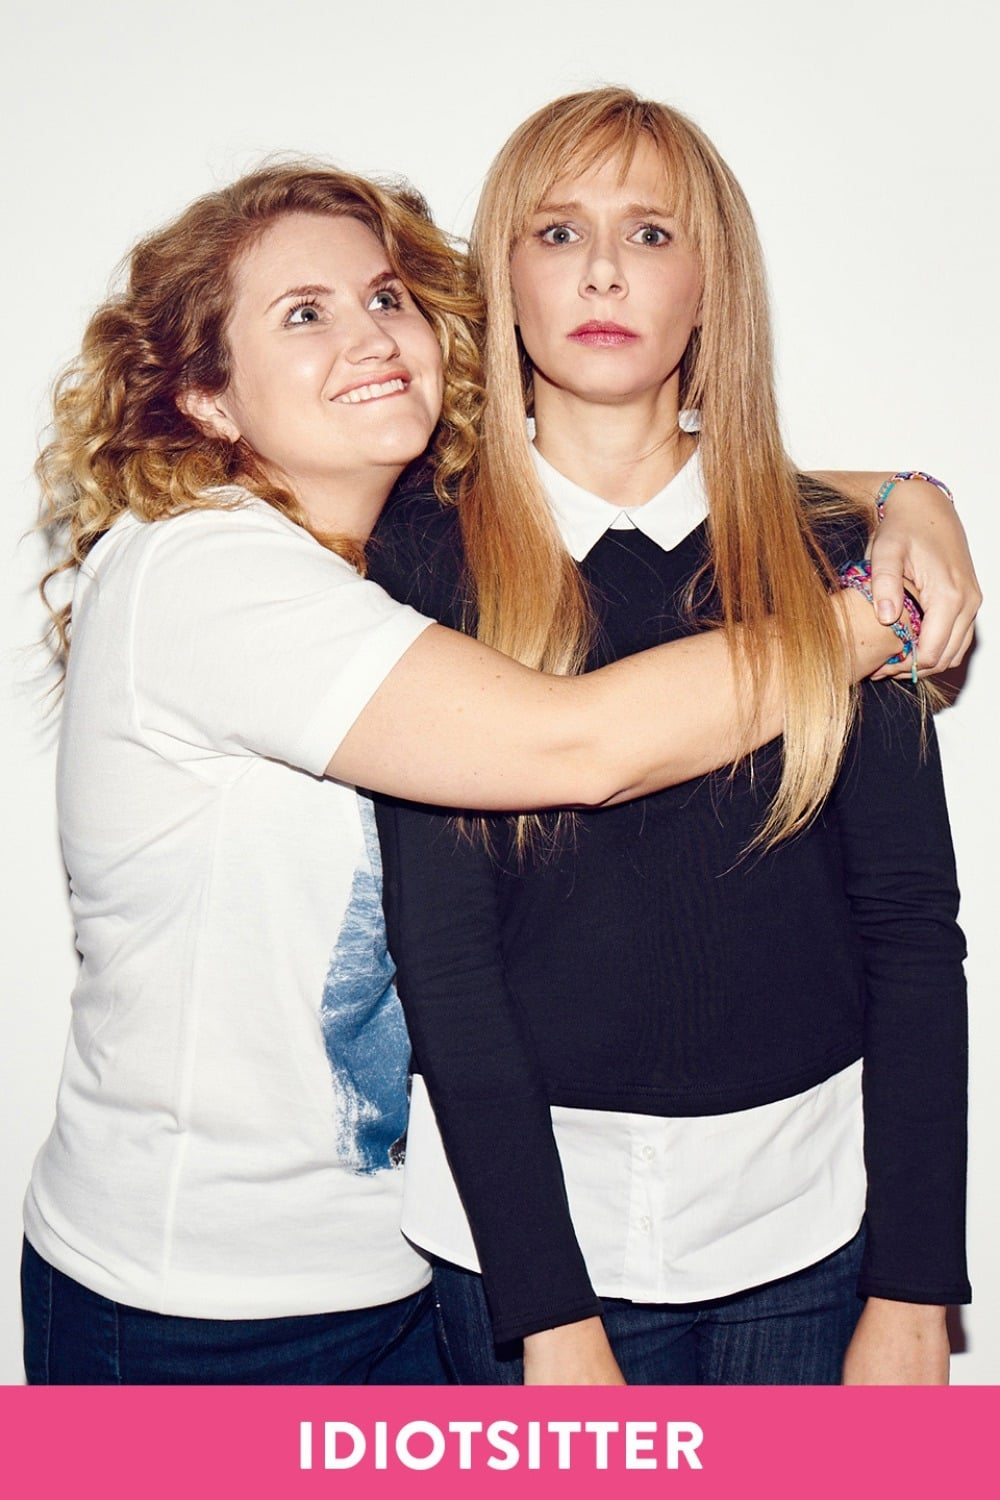 Idiotsitter TV Shows About Wealthy